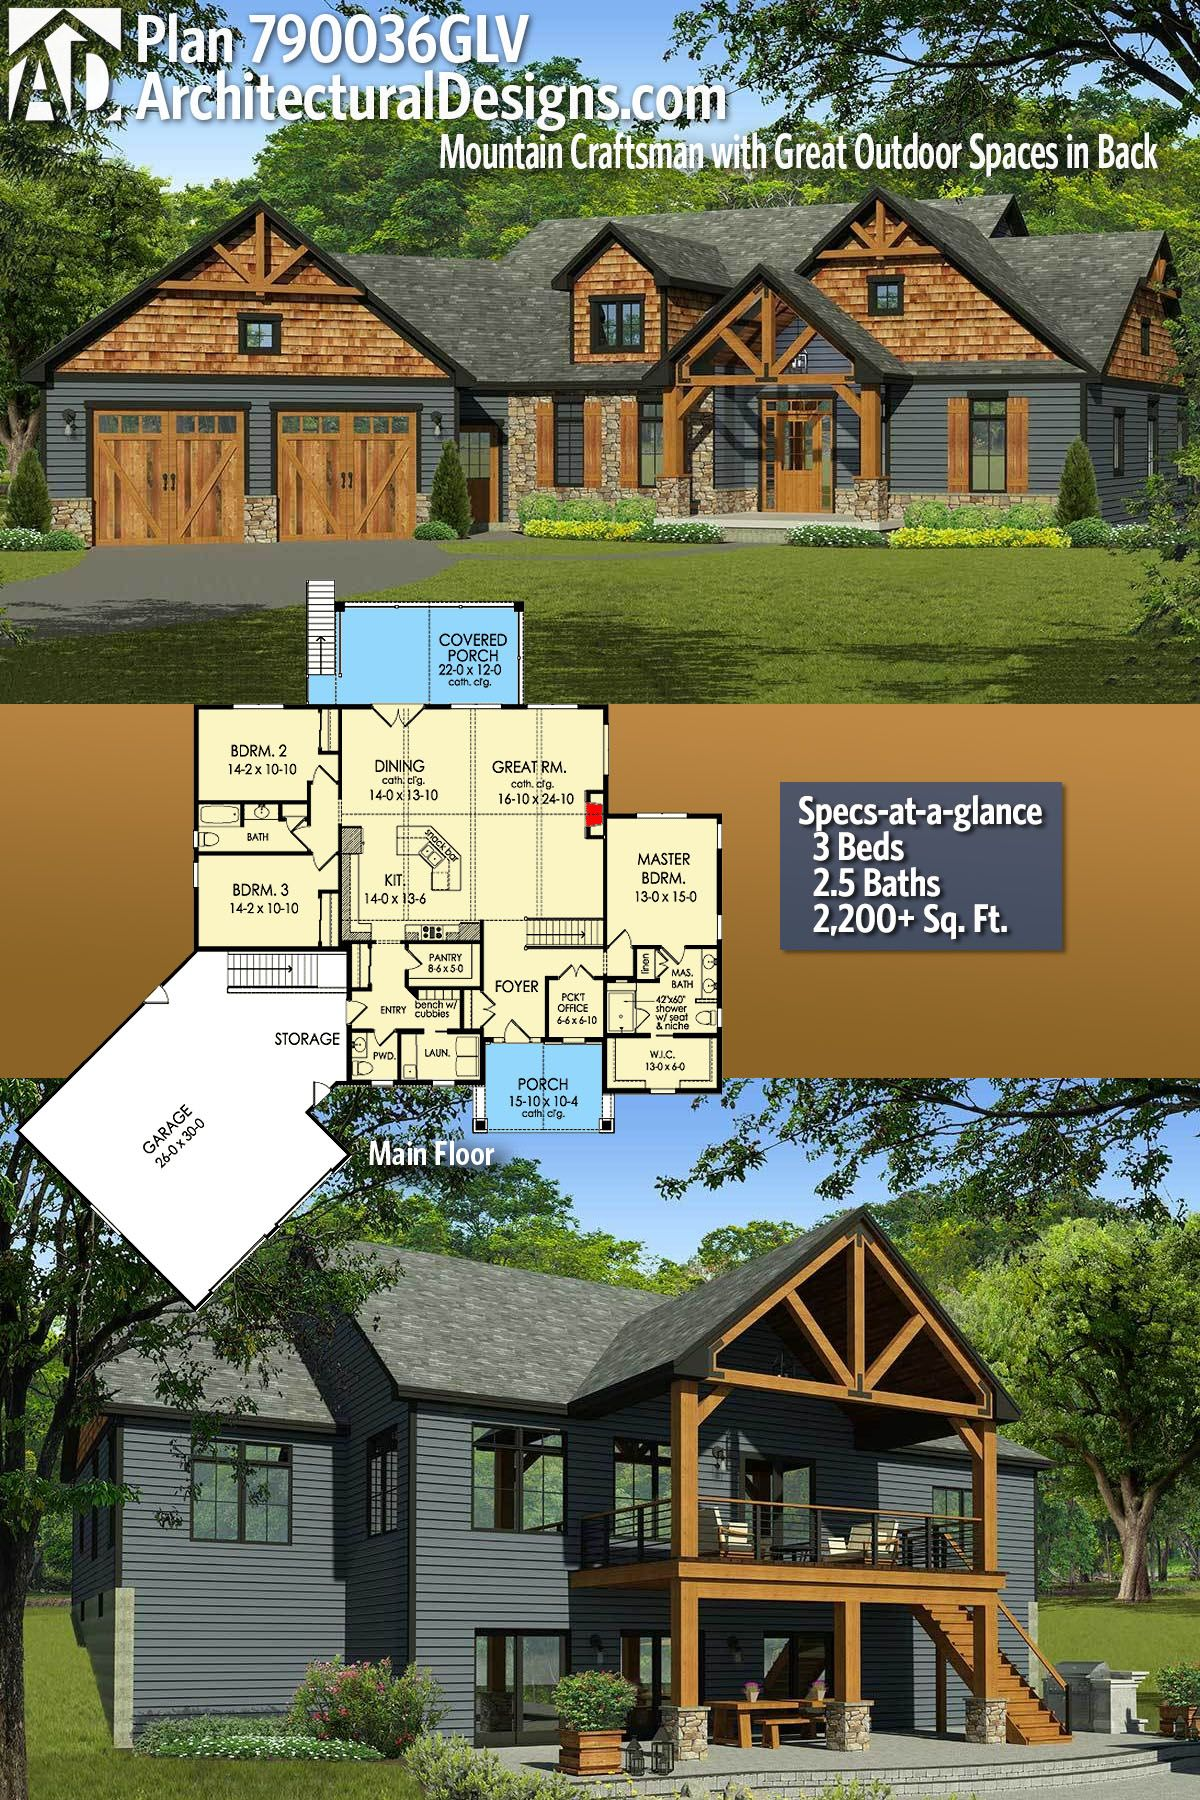 Plan 790036glv 3 Bed Mountain Craftsman With Great Outdoor Spaces In Back In 2020 Lake House Plans Craftsman House Plans New House Plans